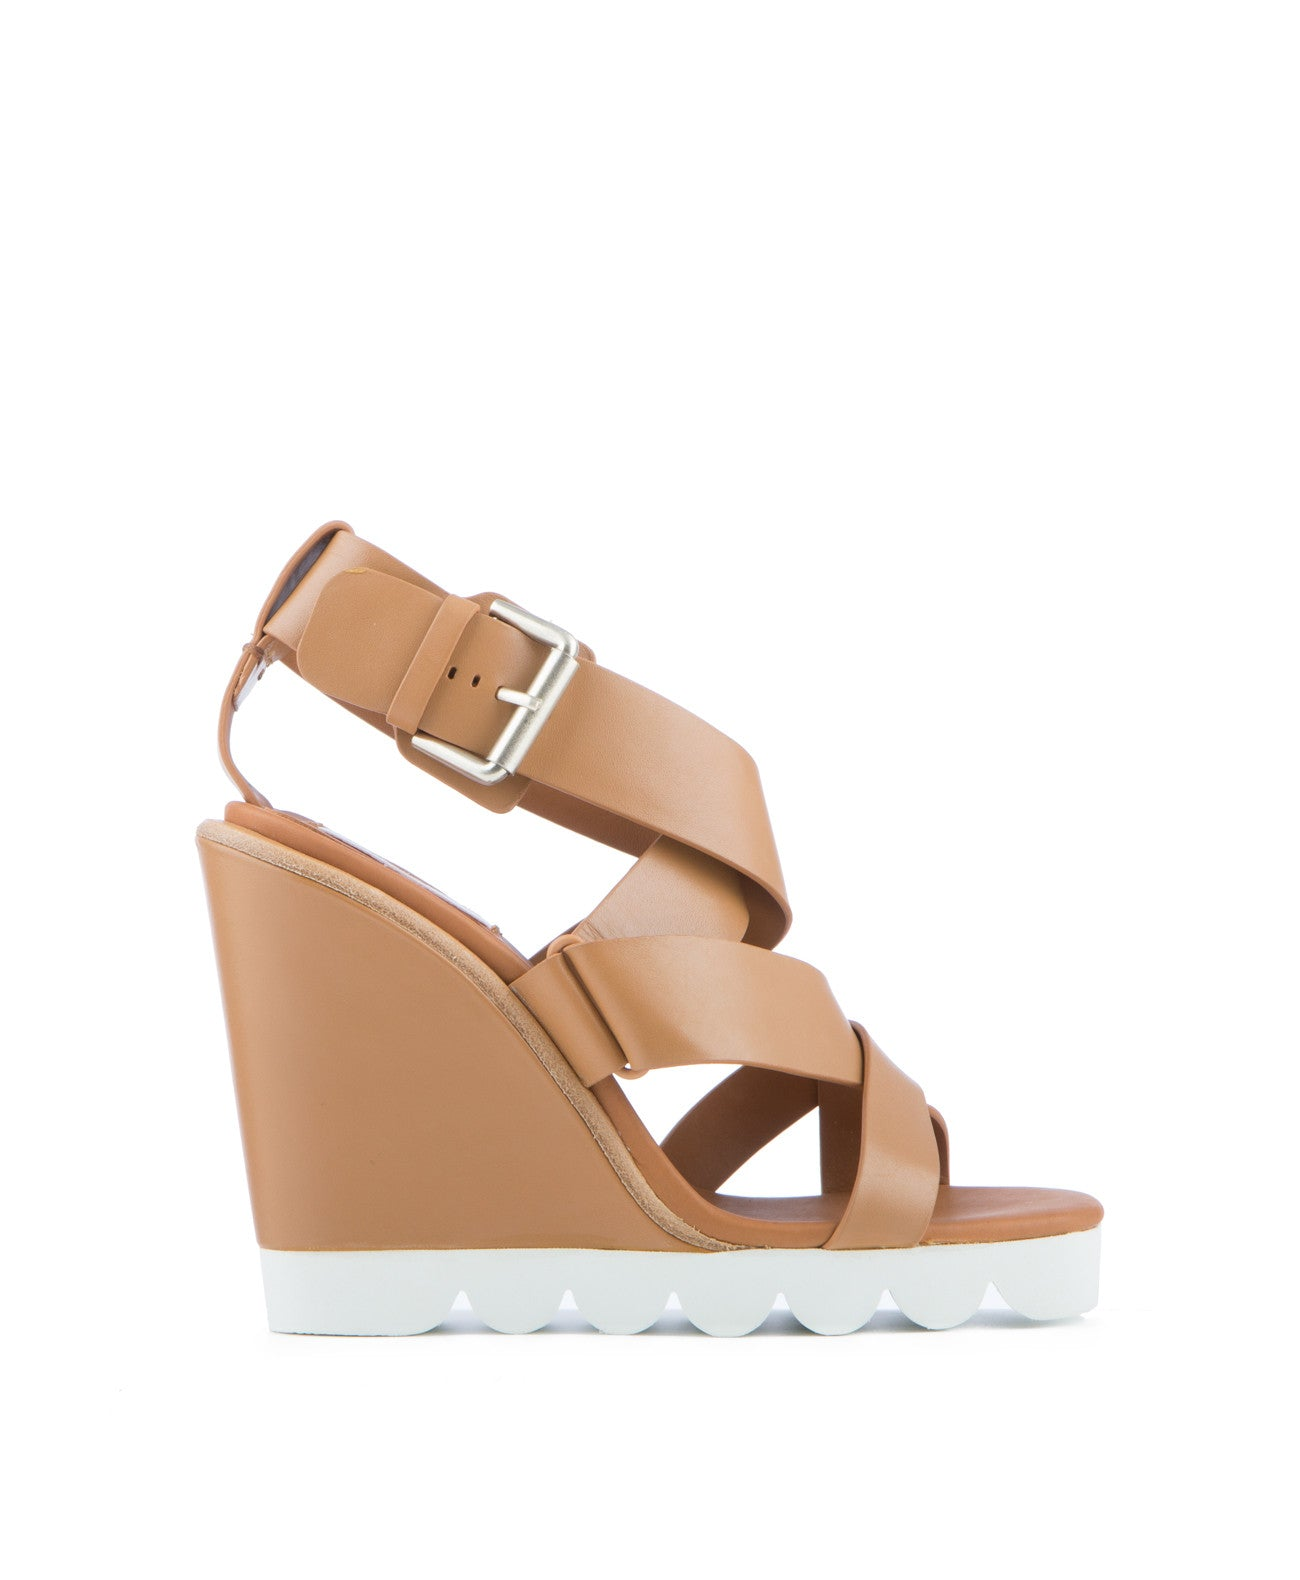 Tiny Leather Wedge - Koko & Palenki - 1